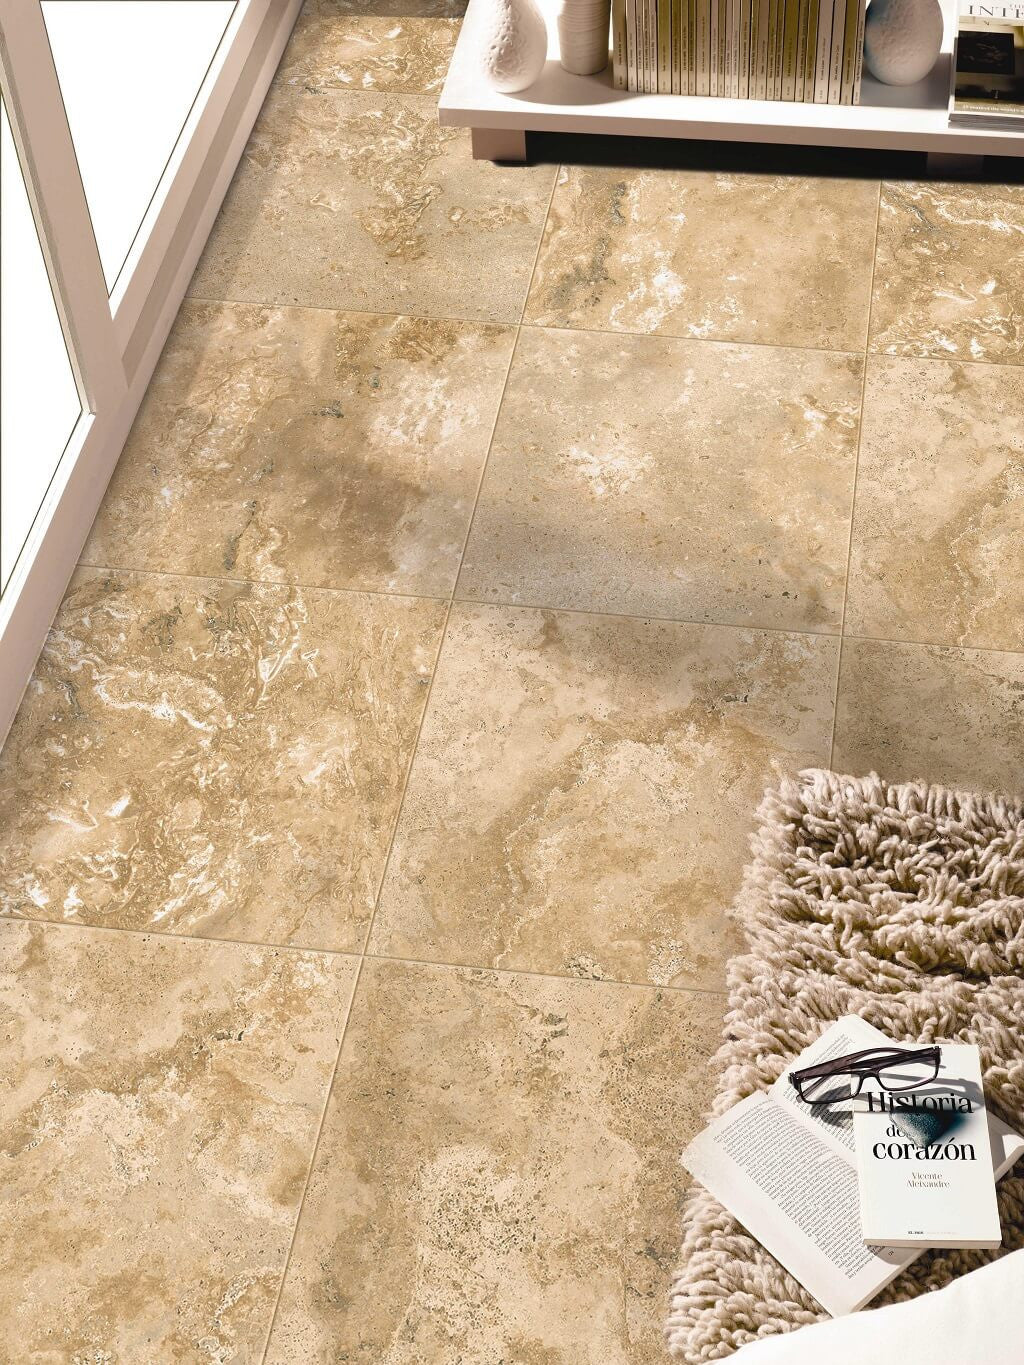 Travertine effect floor tiles by spains azulindus y marti alamo cream floor tiles and books in smart apartment dailygadgetfo Images